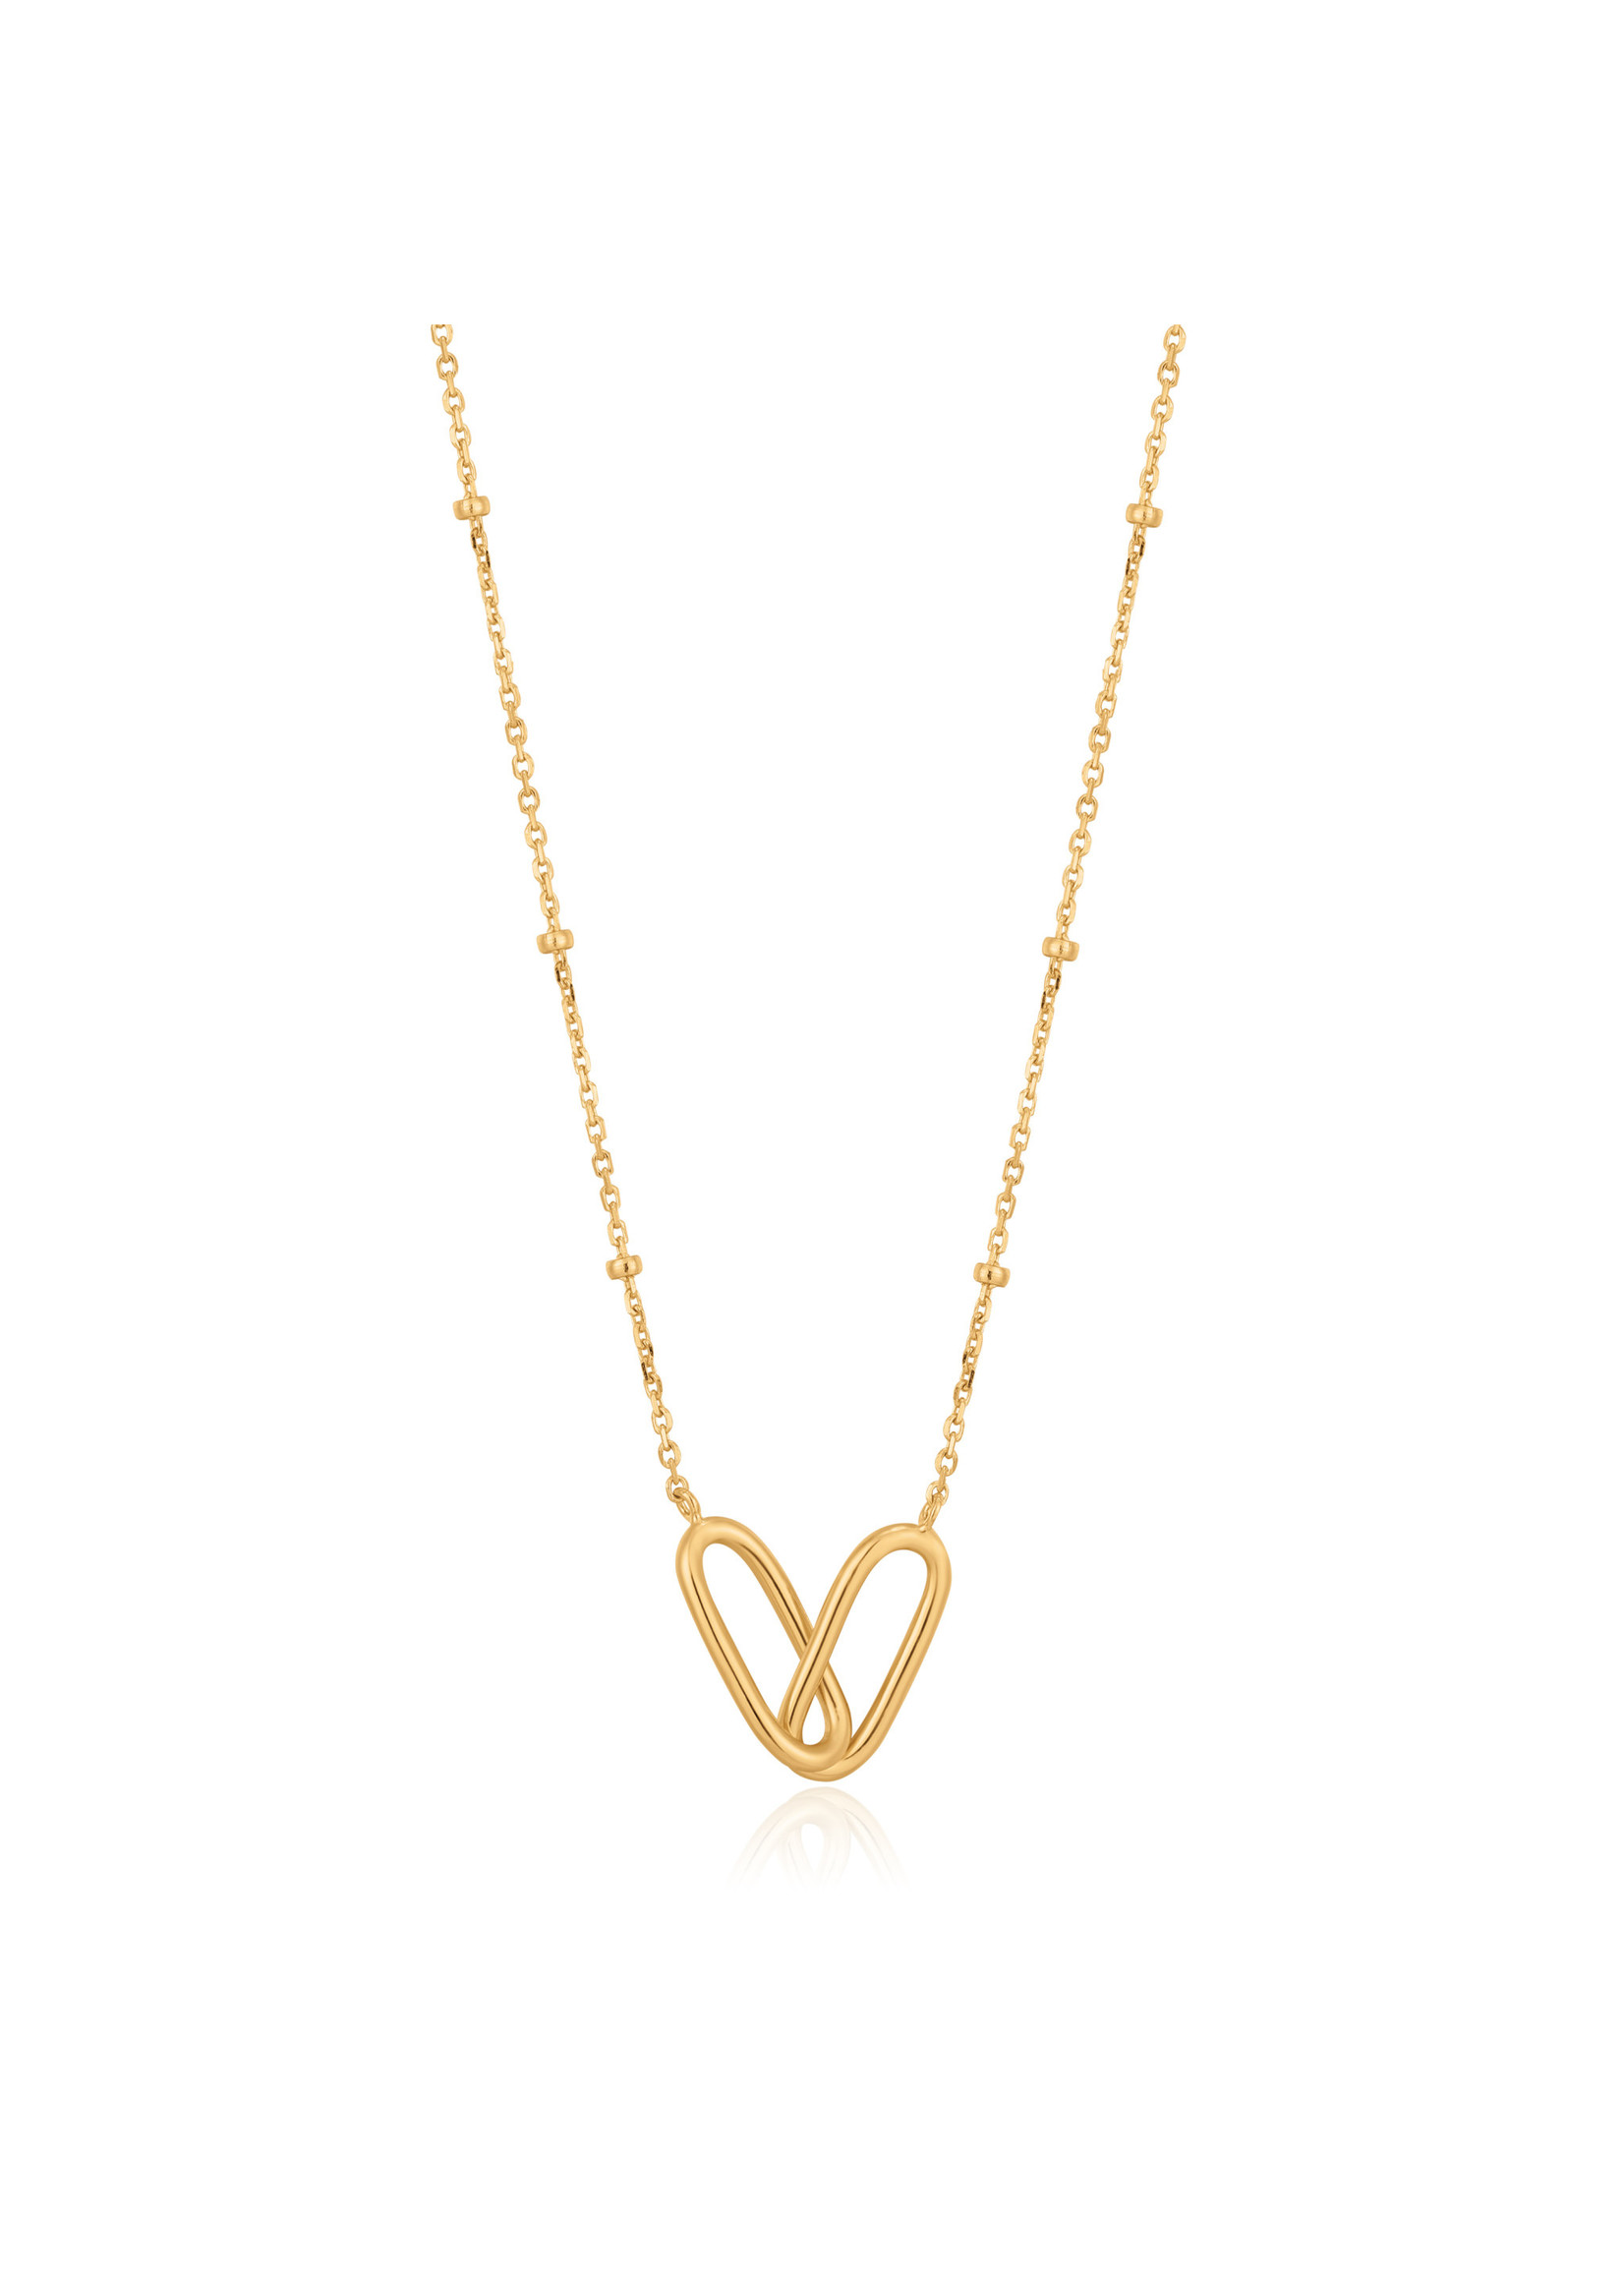 Ania Haie GOLD BEADED CHAIN LINK NECKLACE